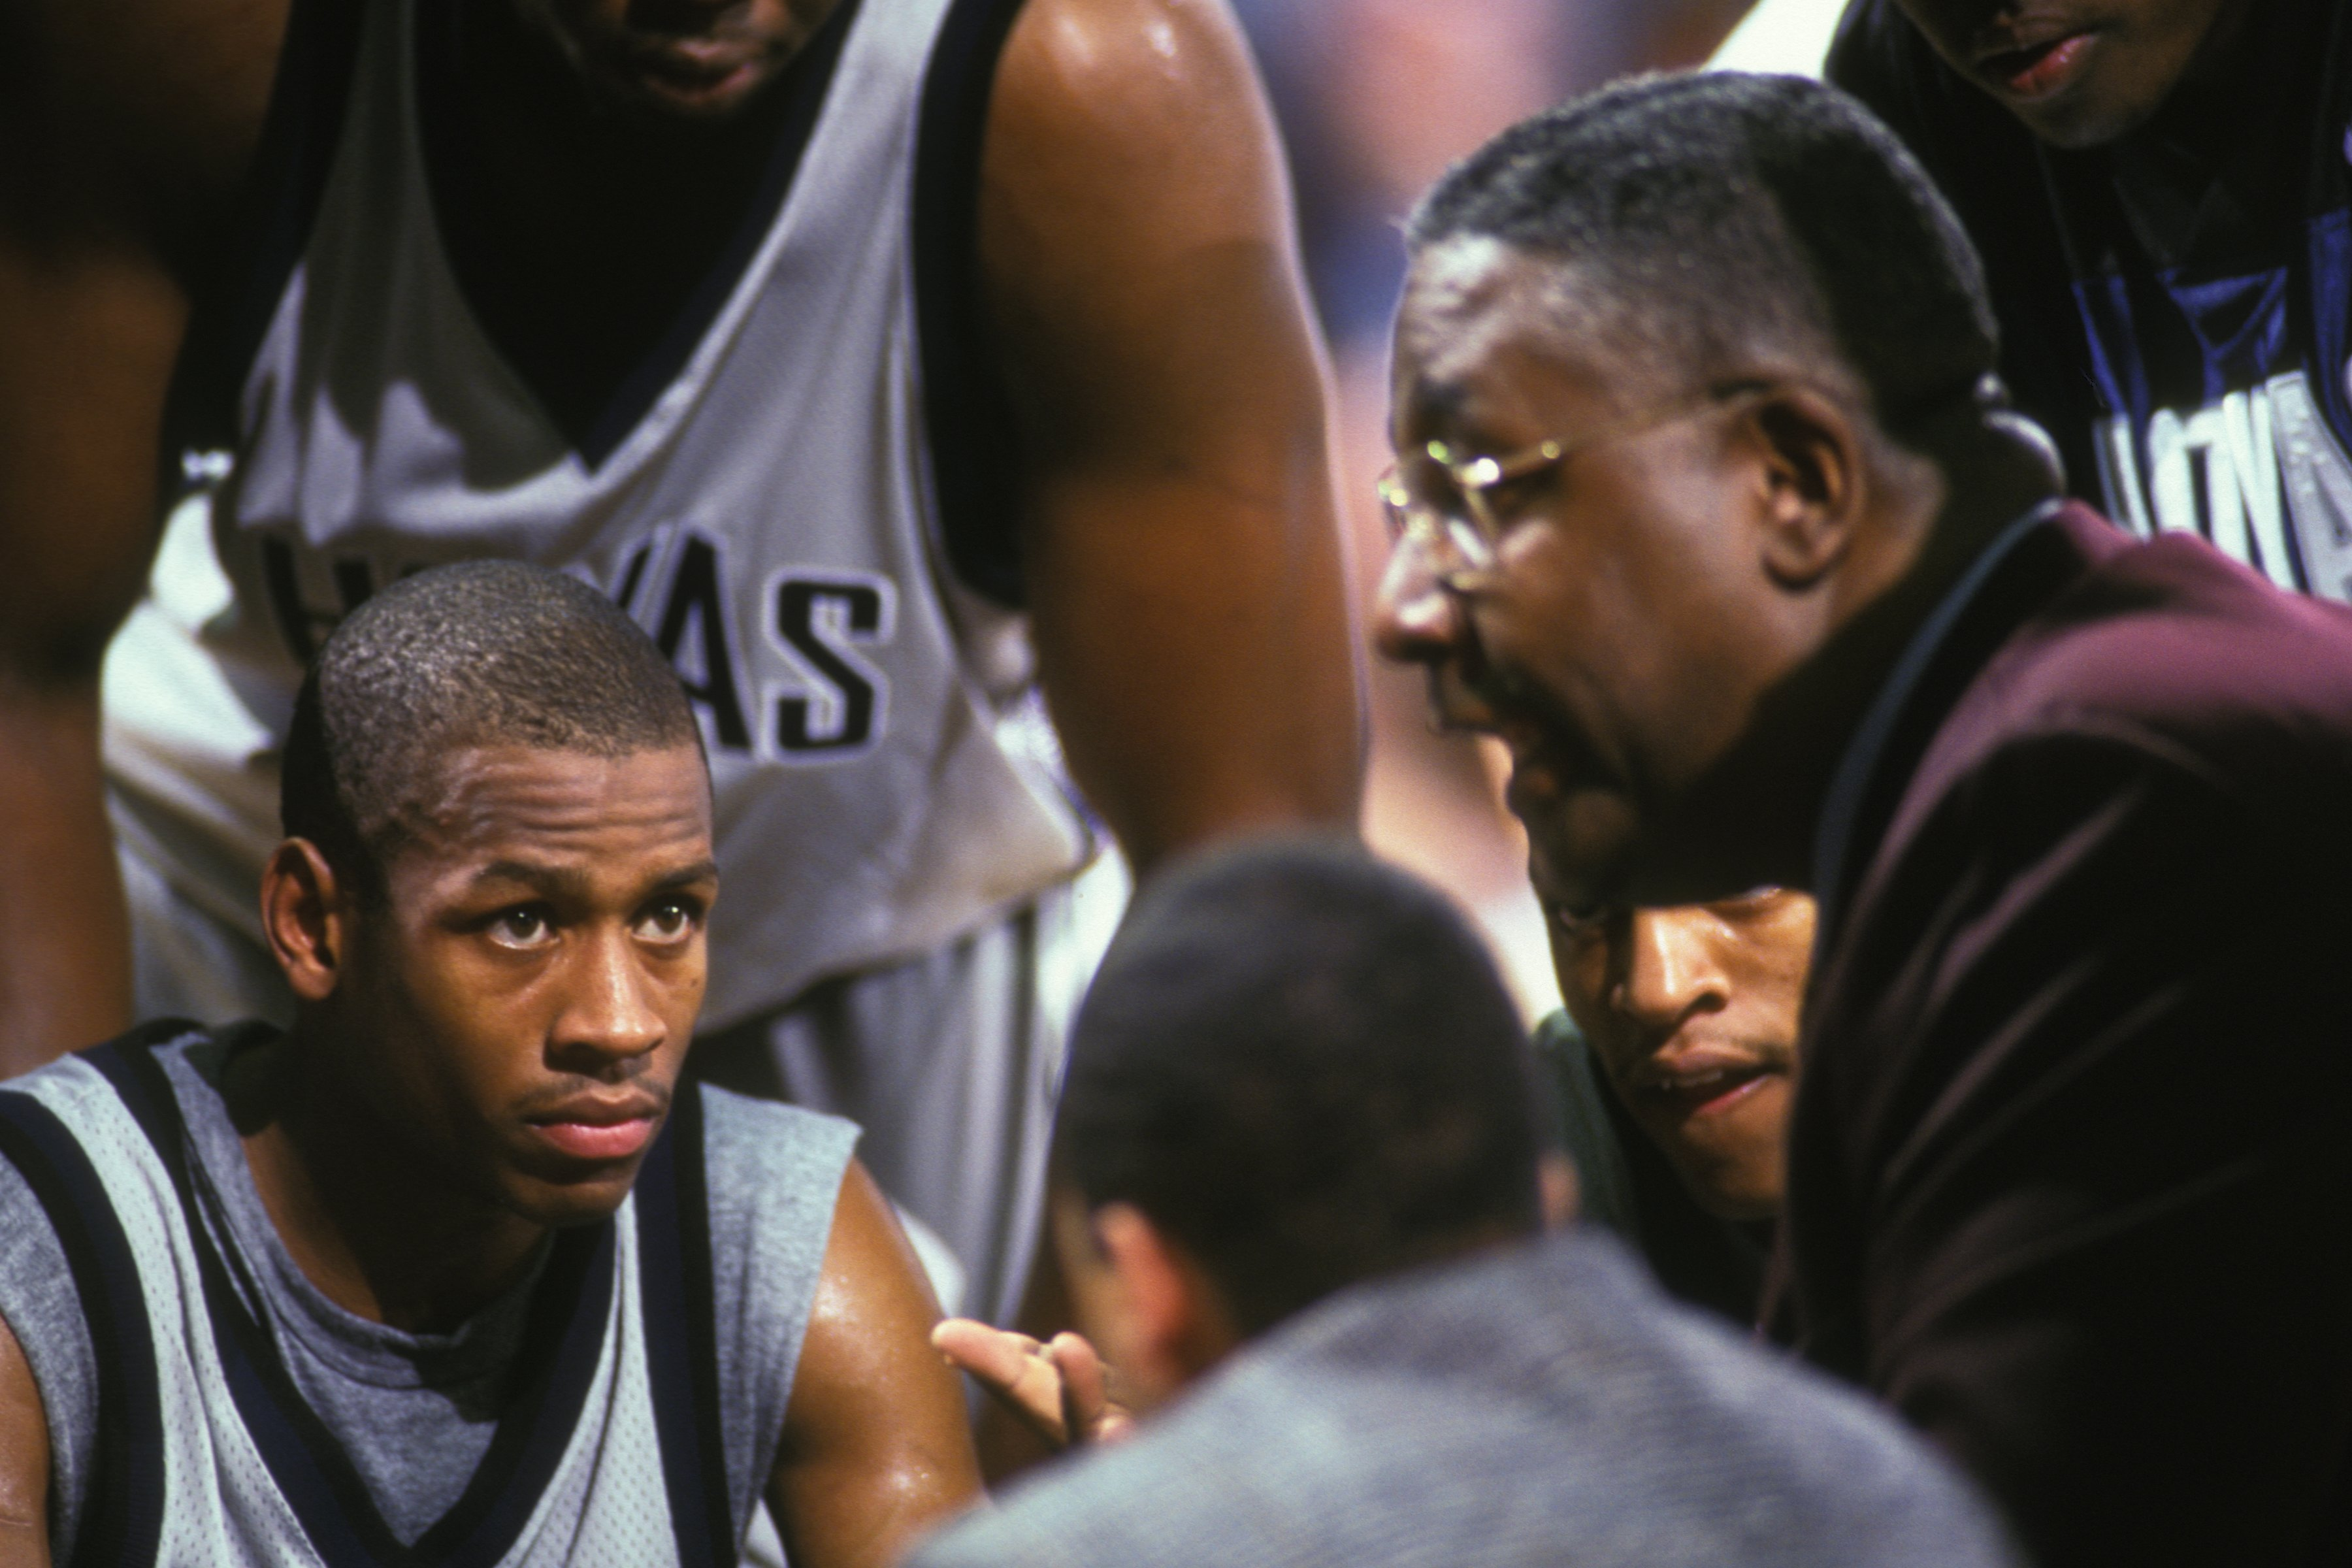 John Thompson (R) coached Allen Iverson (L) at Georgetown in the 1990s.